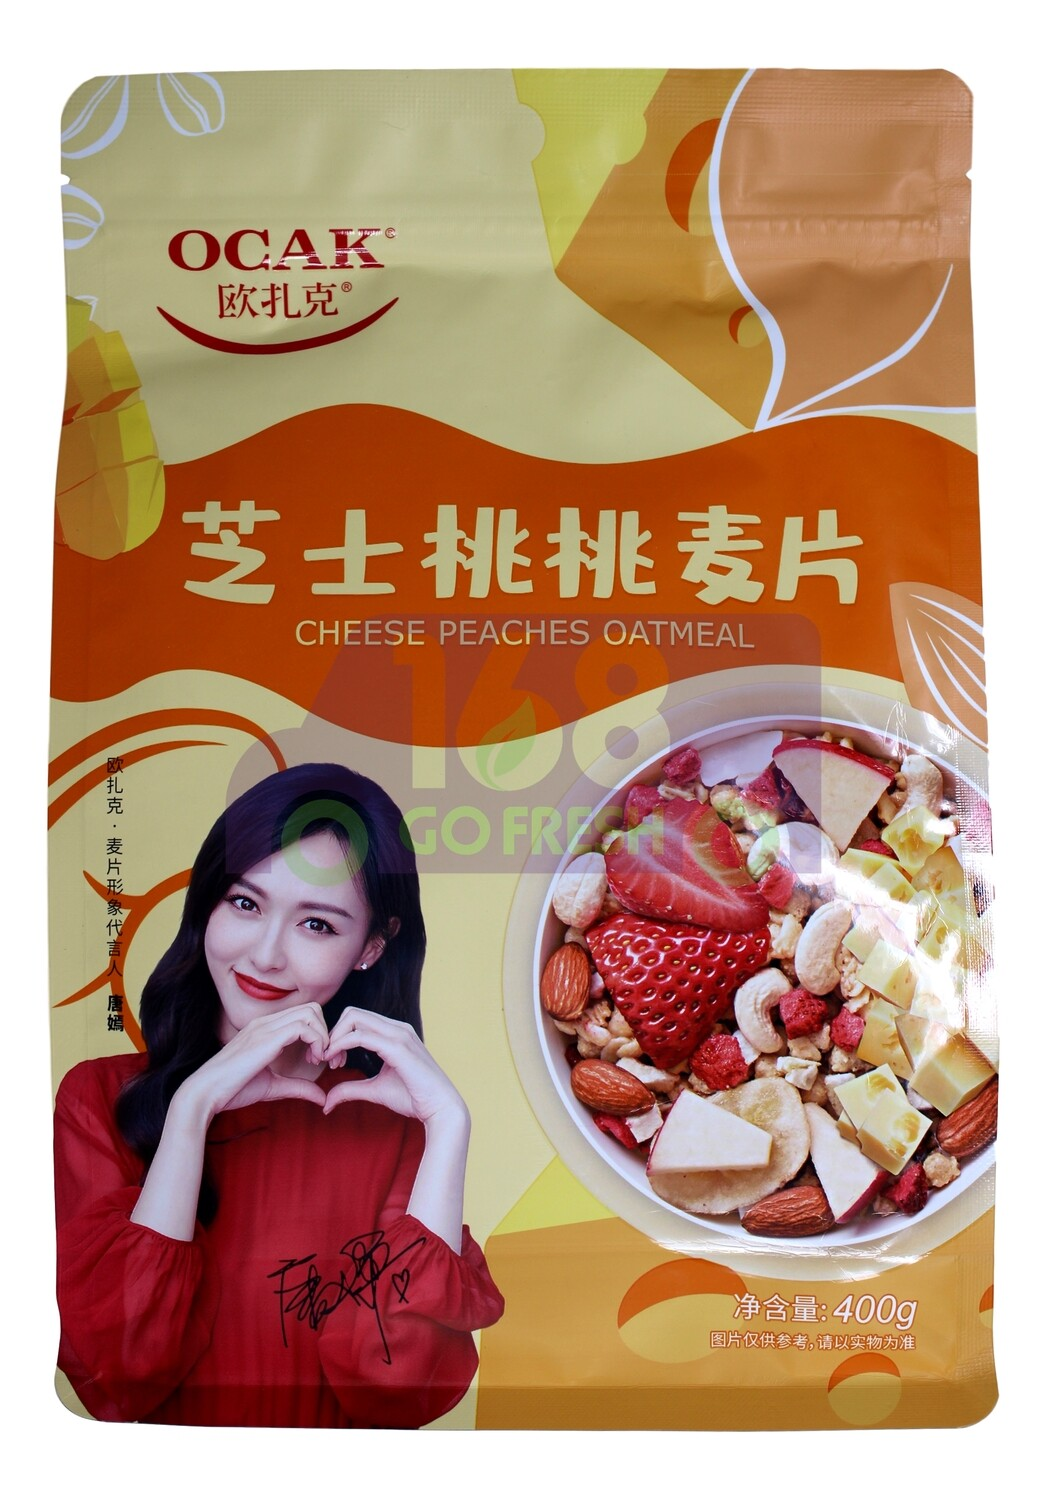 OCAK CHEESE PEACHES OATMEAL 欧扎克 芝士桃桃麦片(400G)